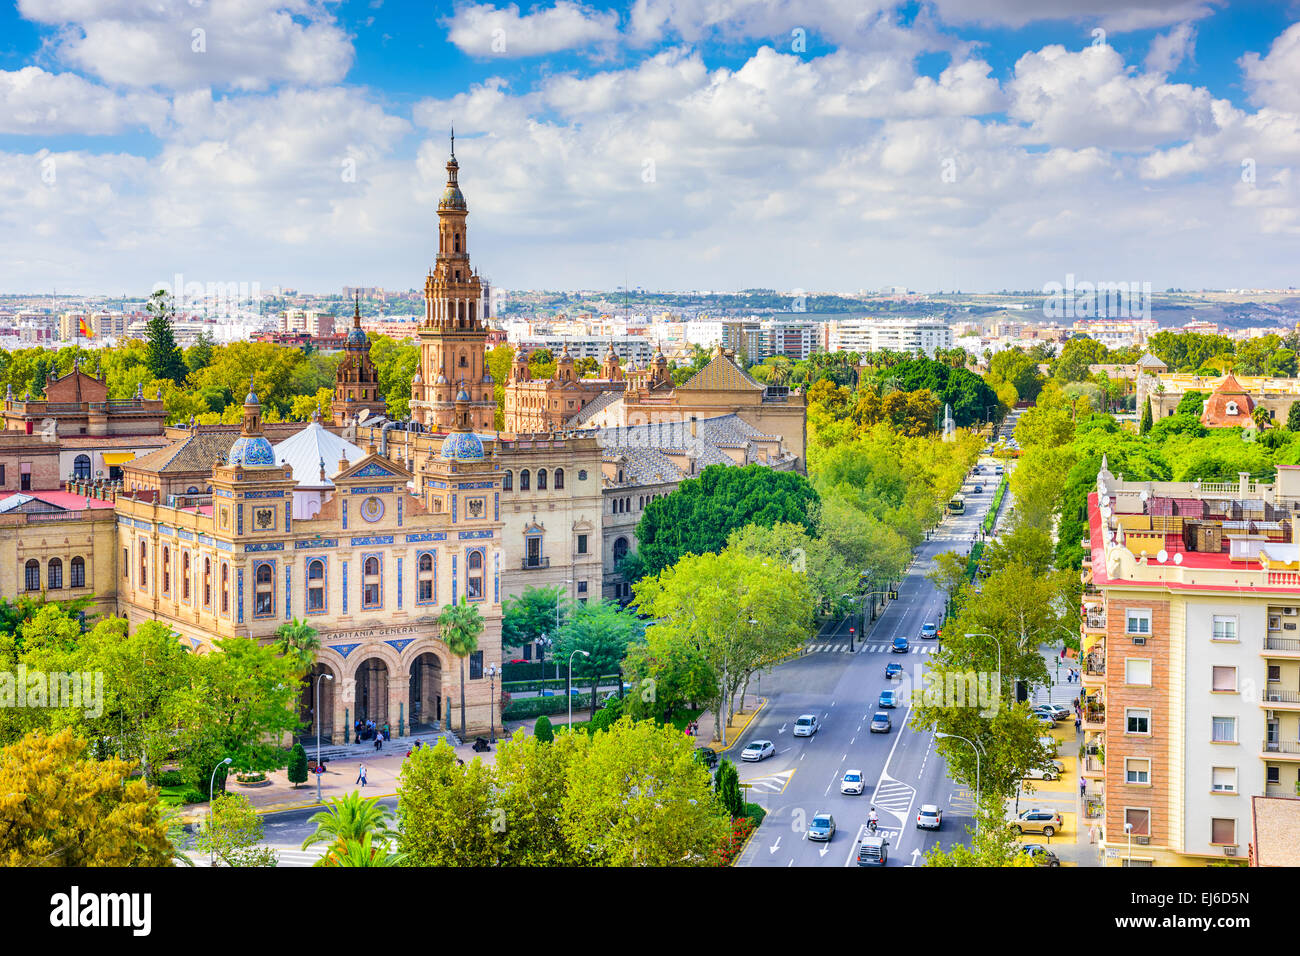 Seville, Spain cityscape towards Plaza de Espana. - Stock Image